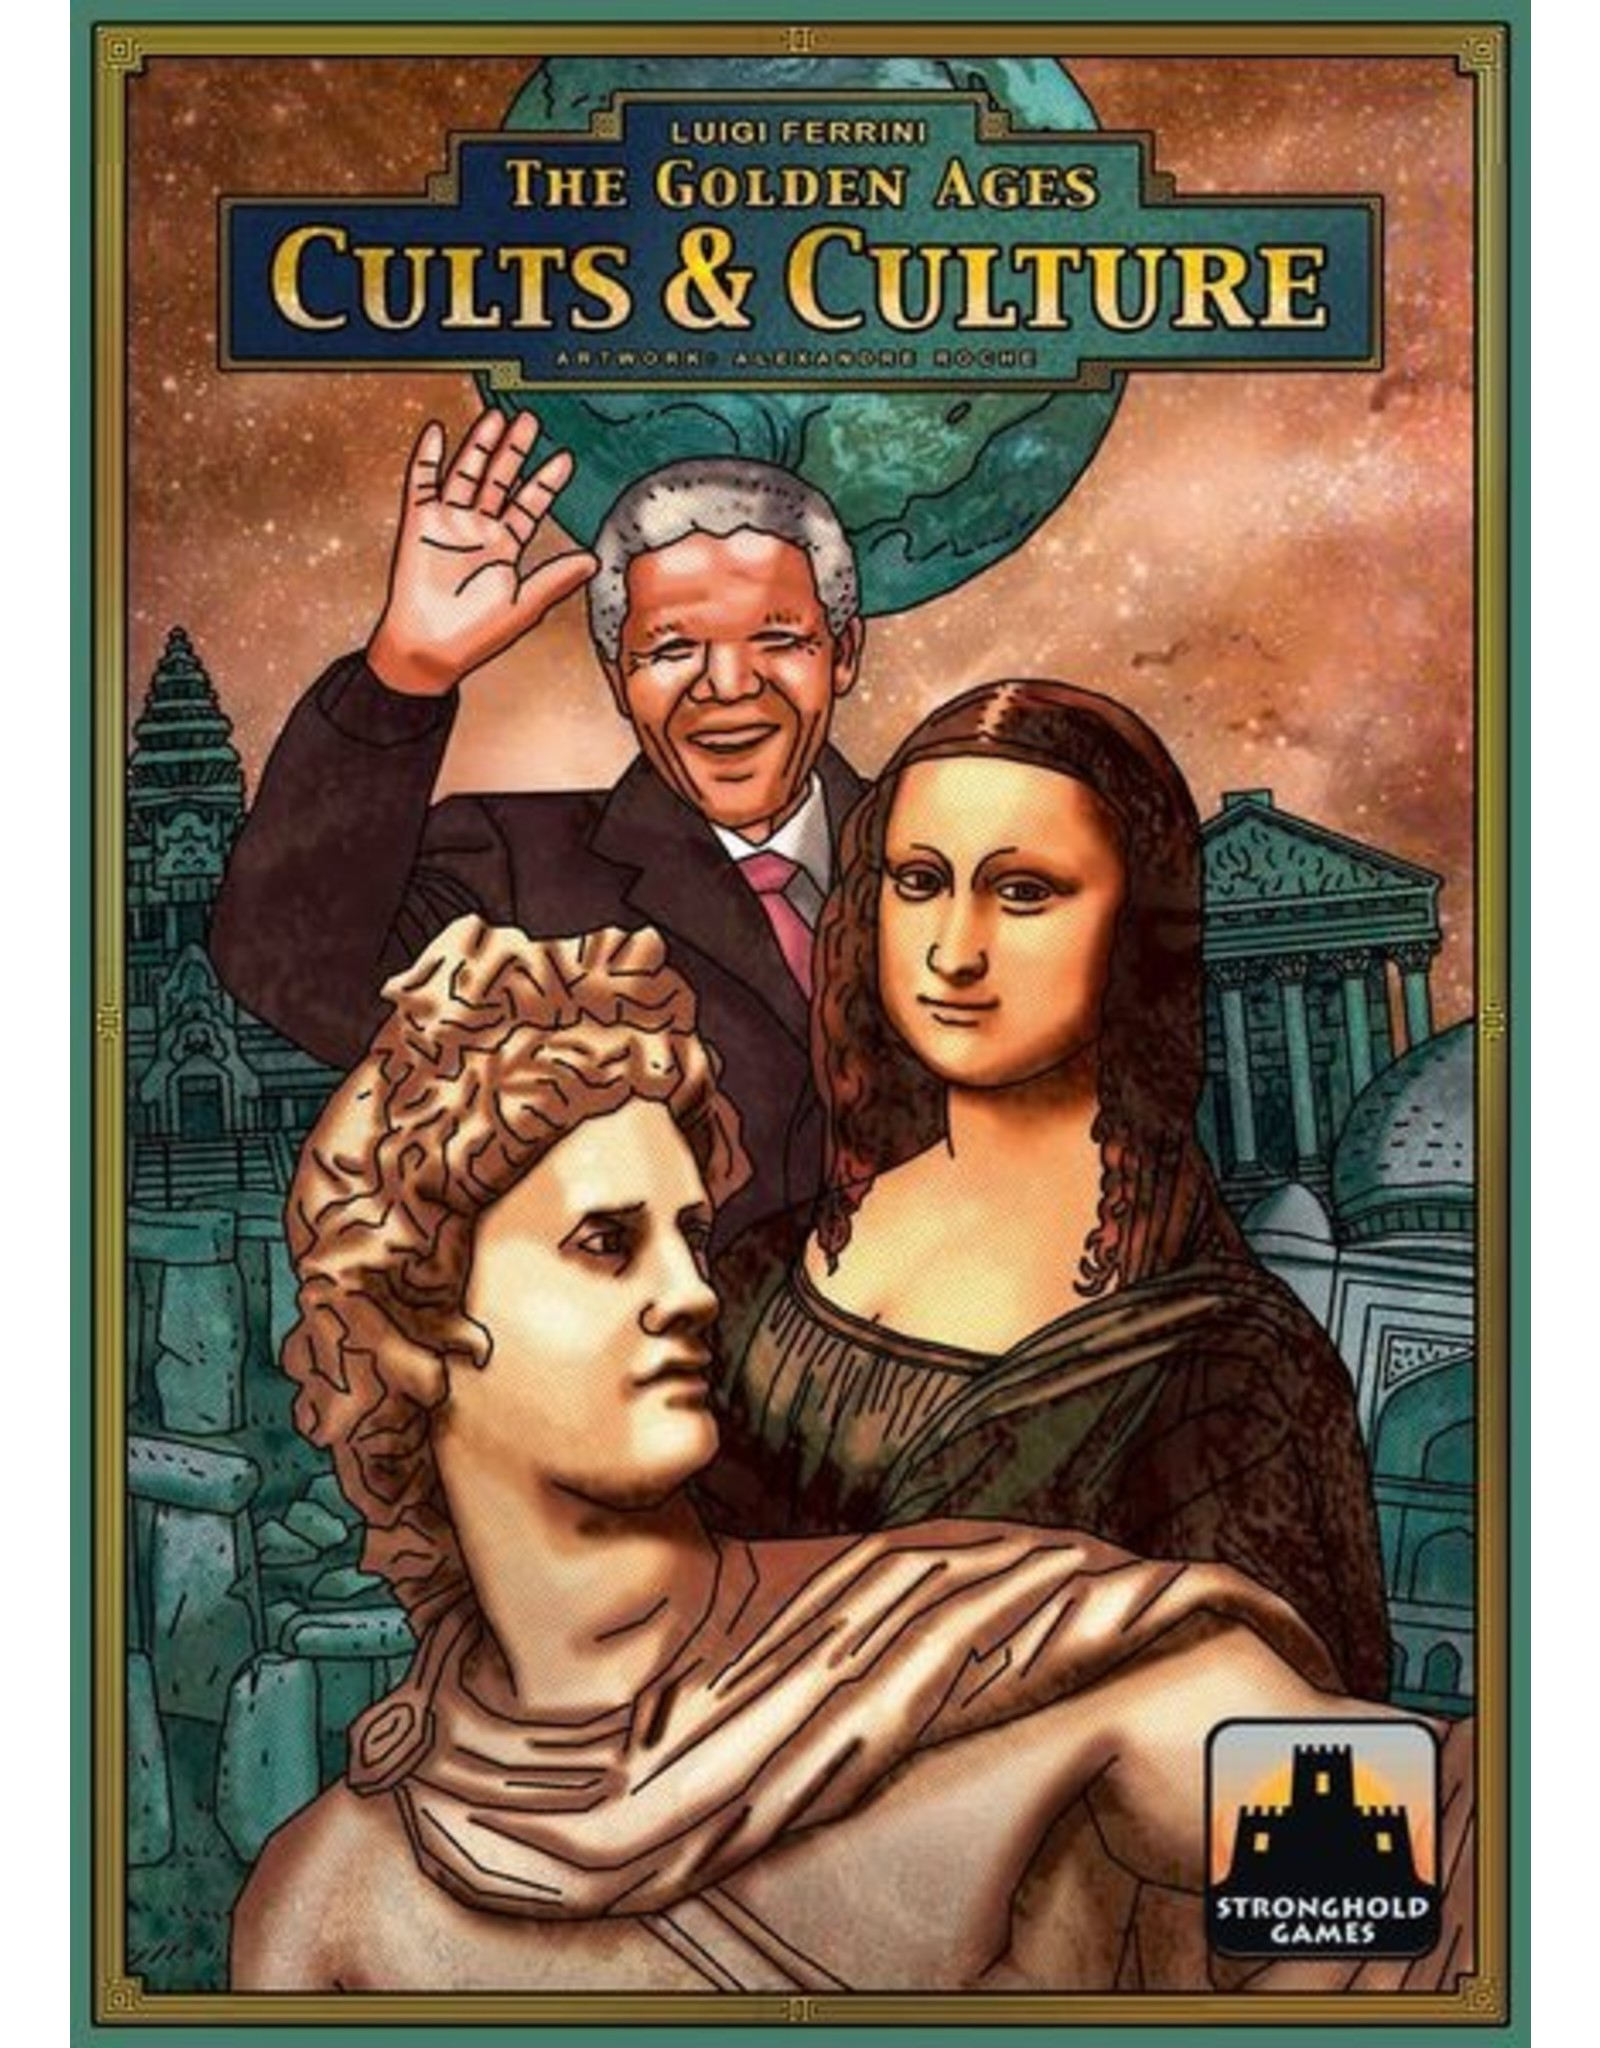 THE GOLDEN AGES CULTS & CULTURES